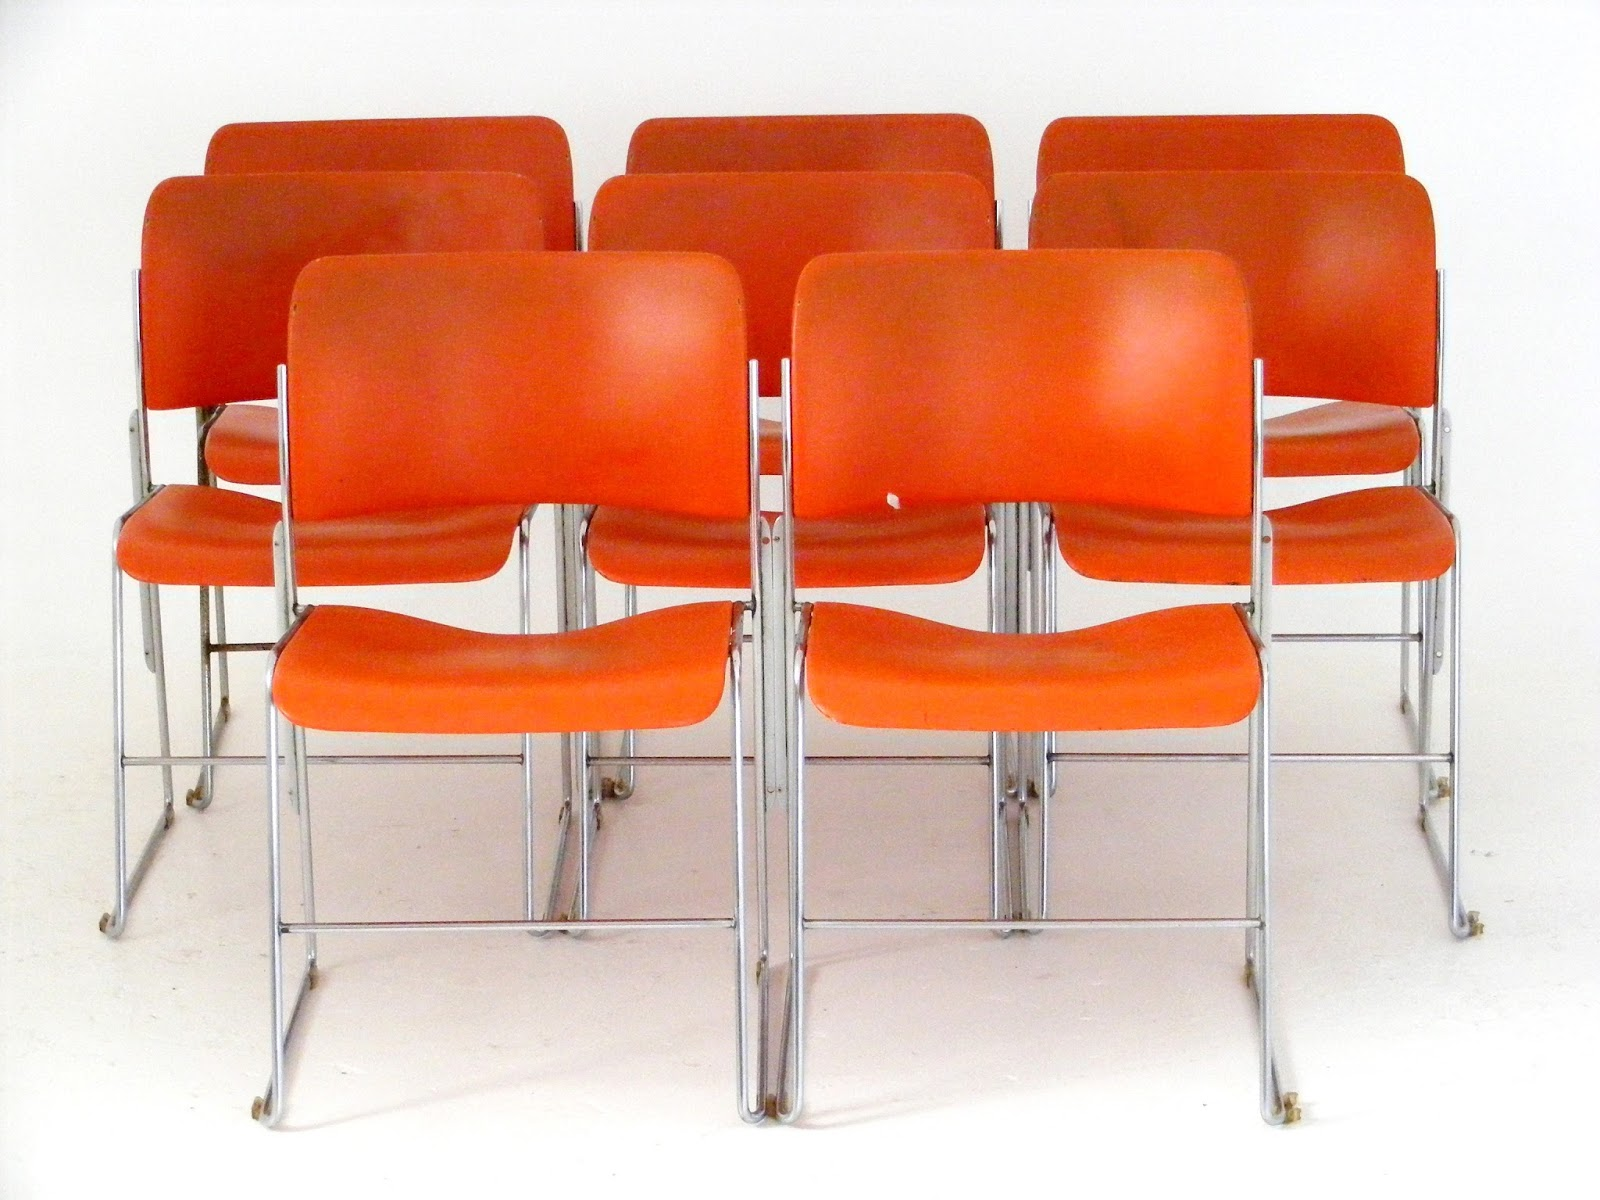 David Rowland Metal Chair Doc Mcstuffin Toys R Us Vamp Furniture New Vintage Stock Just Unpacked At 8 Original Orange Gf 40 4 Stackable Chairs Designed In 1964 By For Business Ohio